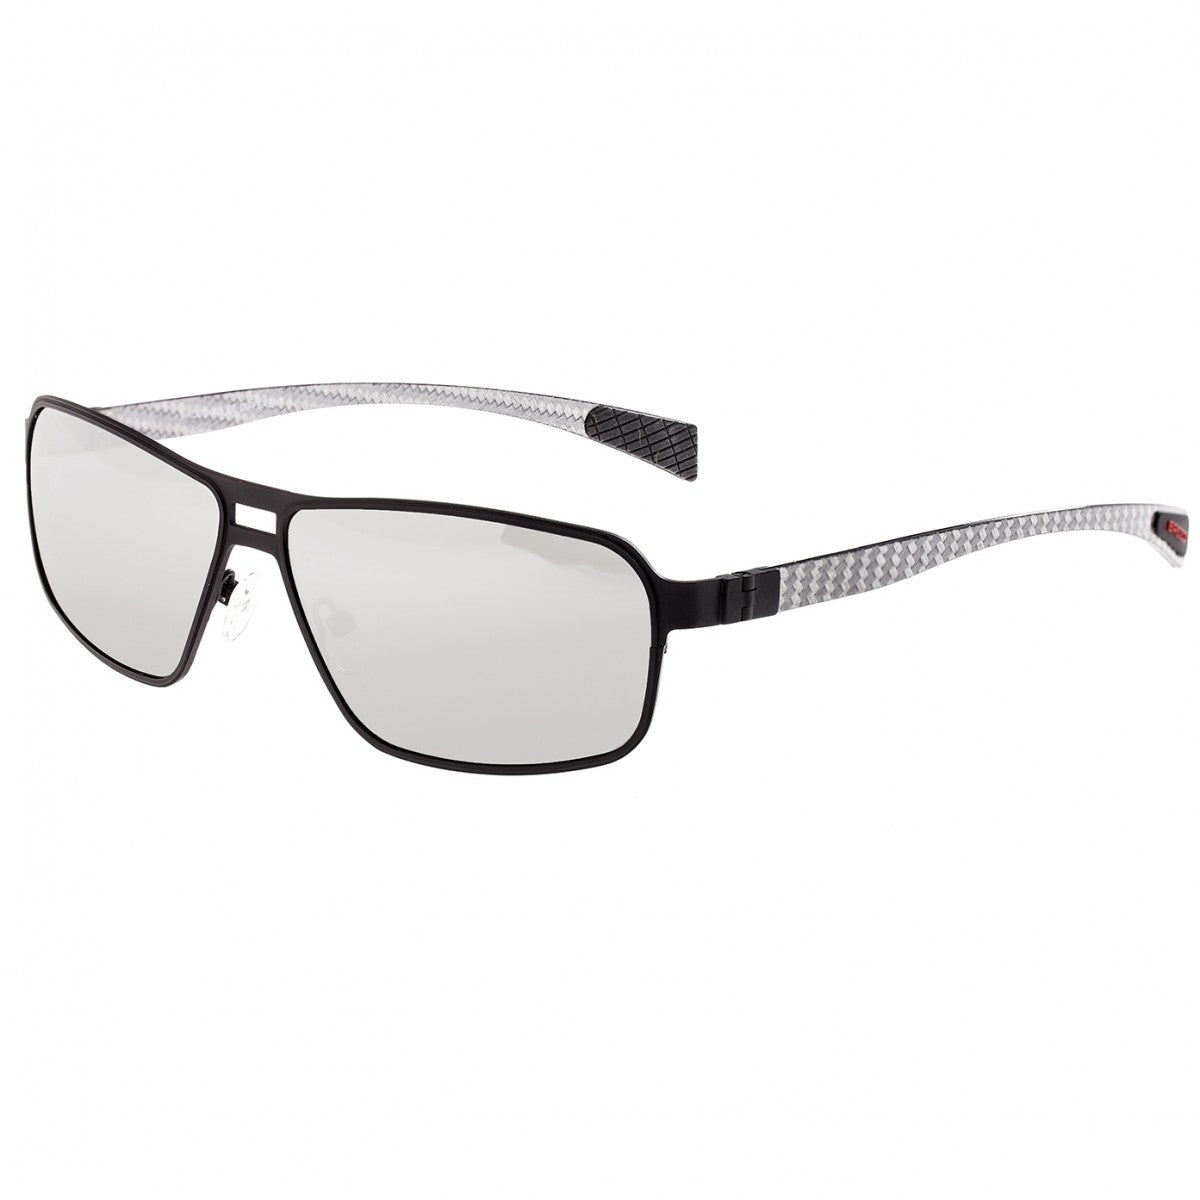 Breed Meridian Titanium and Carbon Fiber Polarized Sunglasses - GENT.ONE